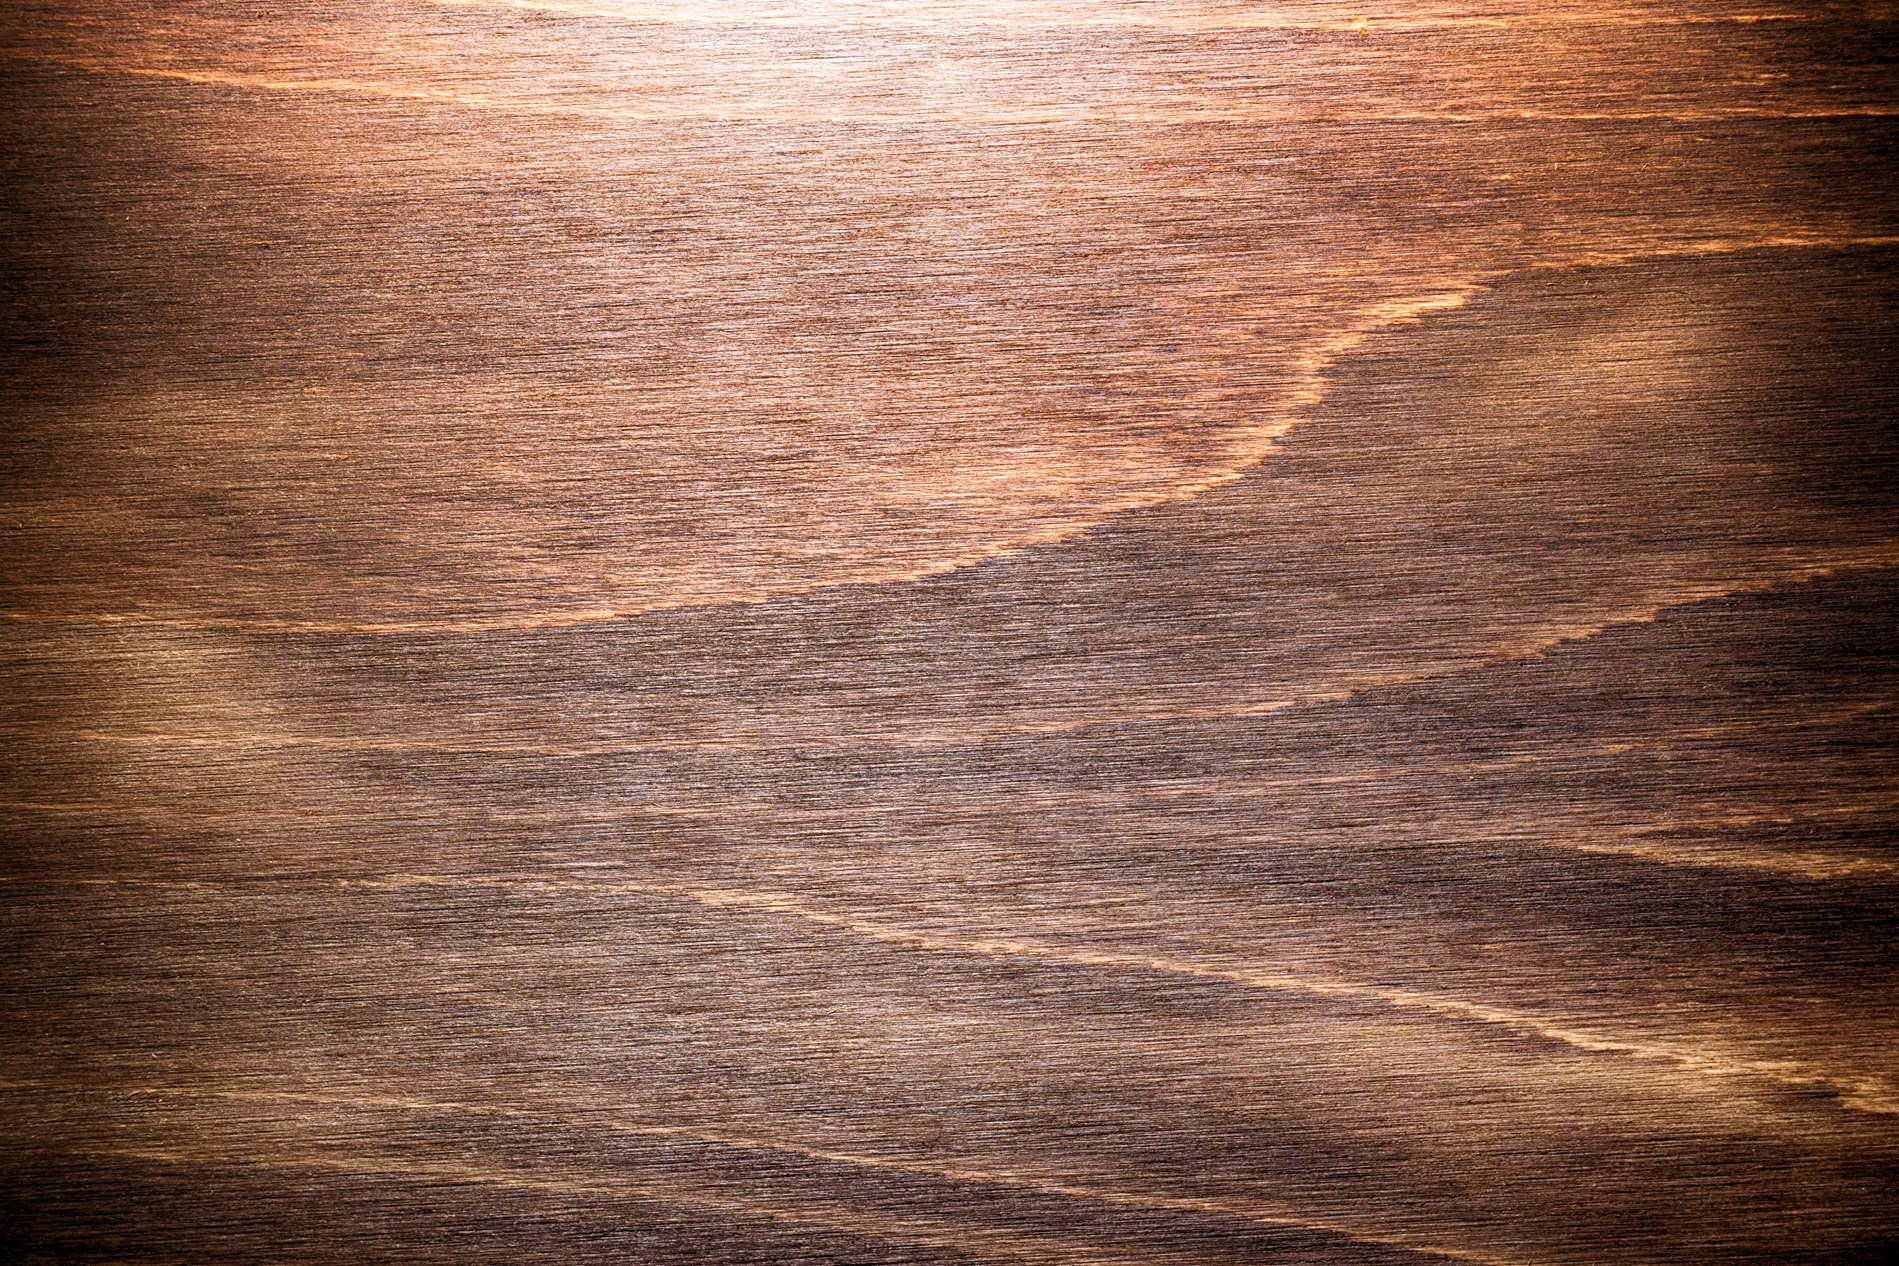 Brown Vintage Wood Texture Background Photohdx